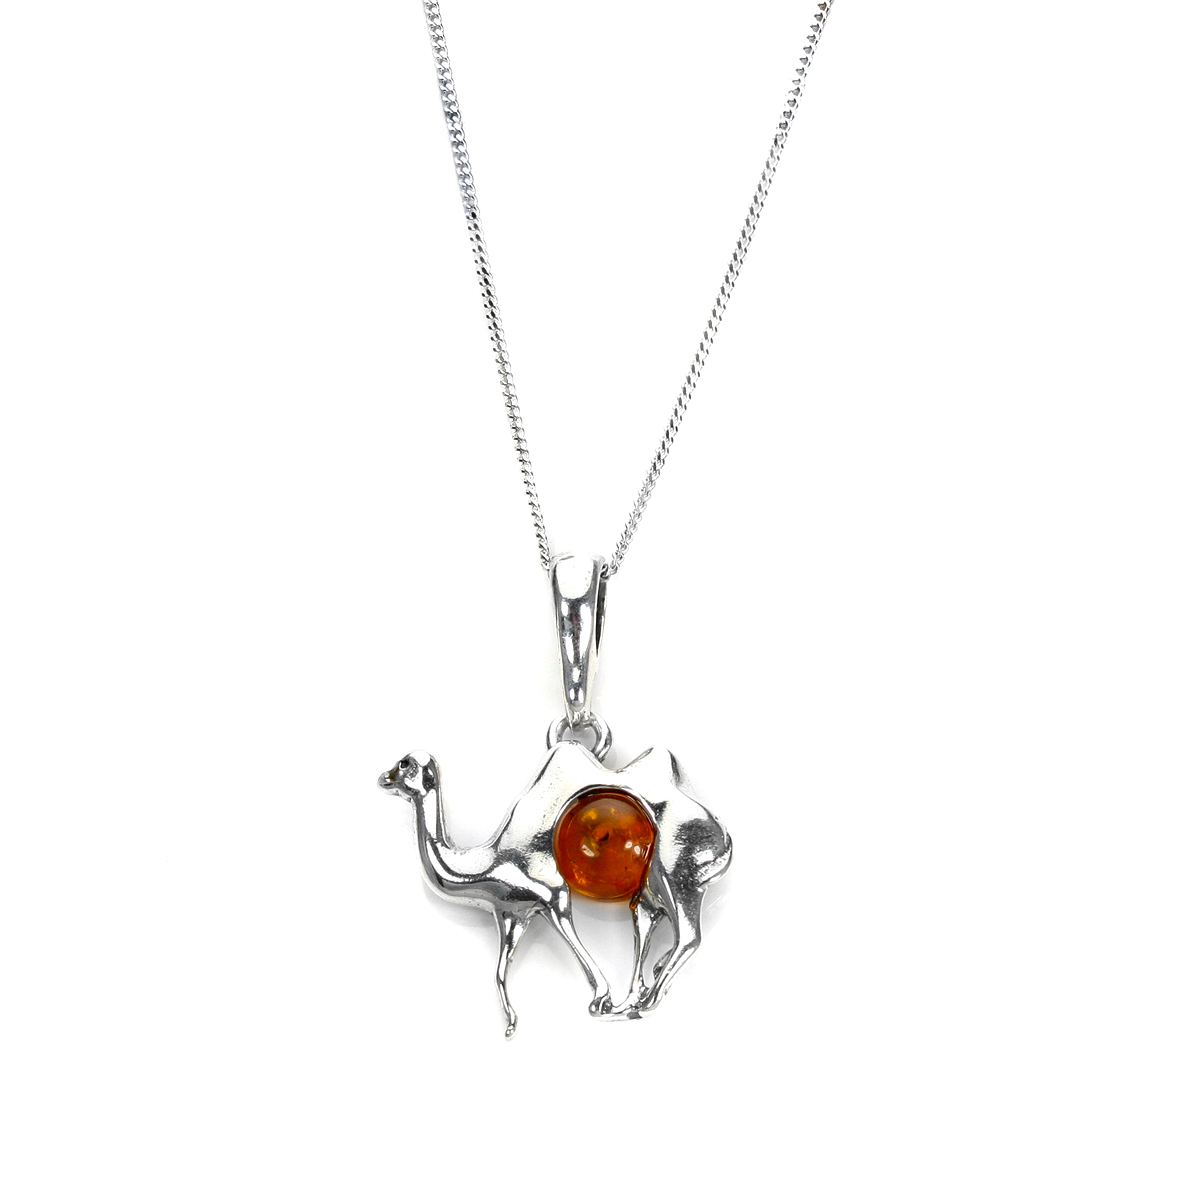 An image of Sterling Silver Baltic Amber Camel Pendant